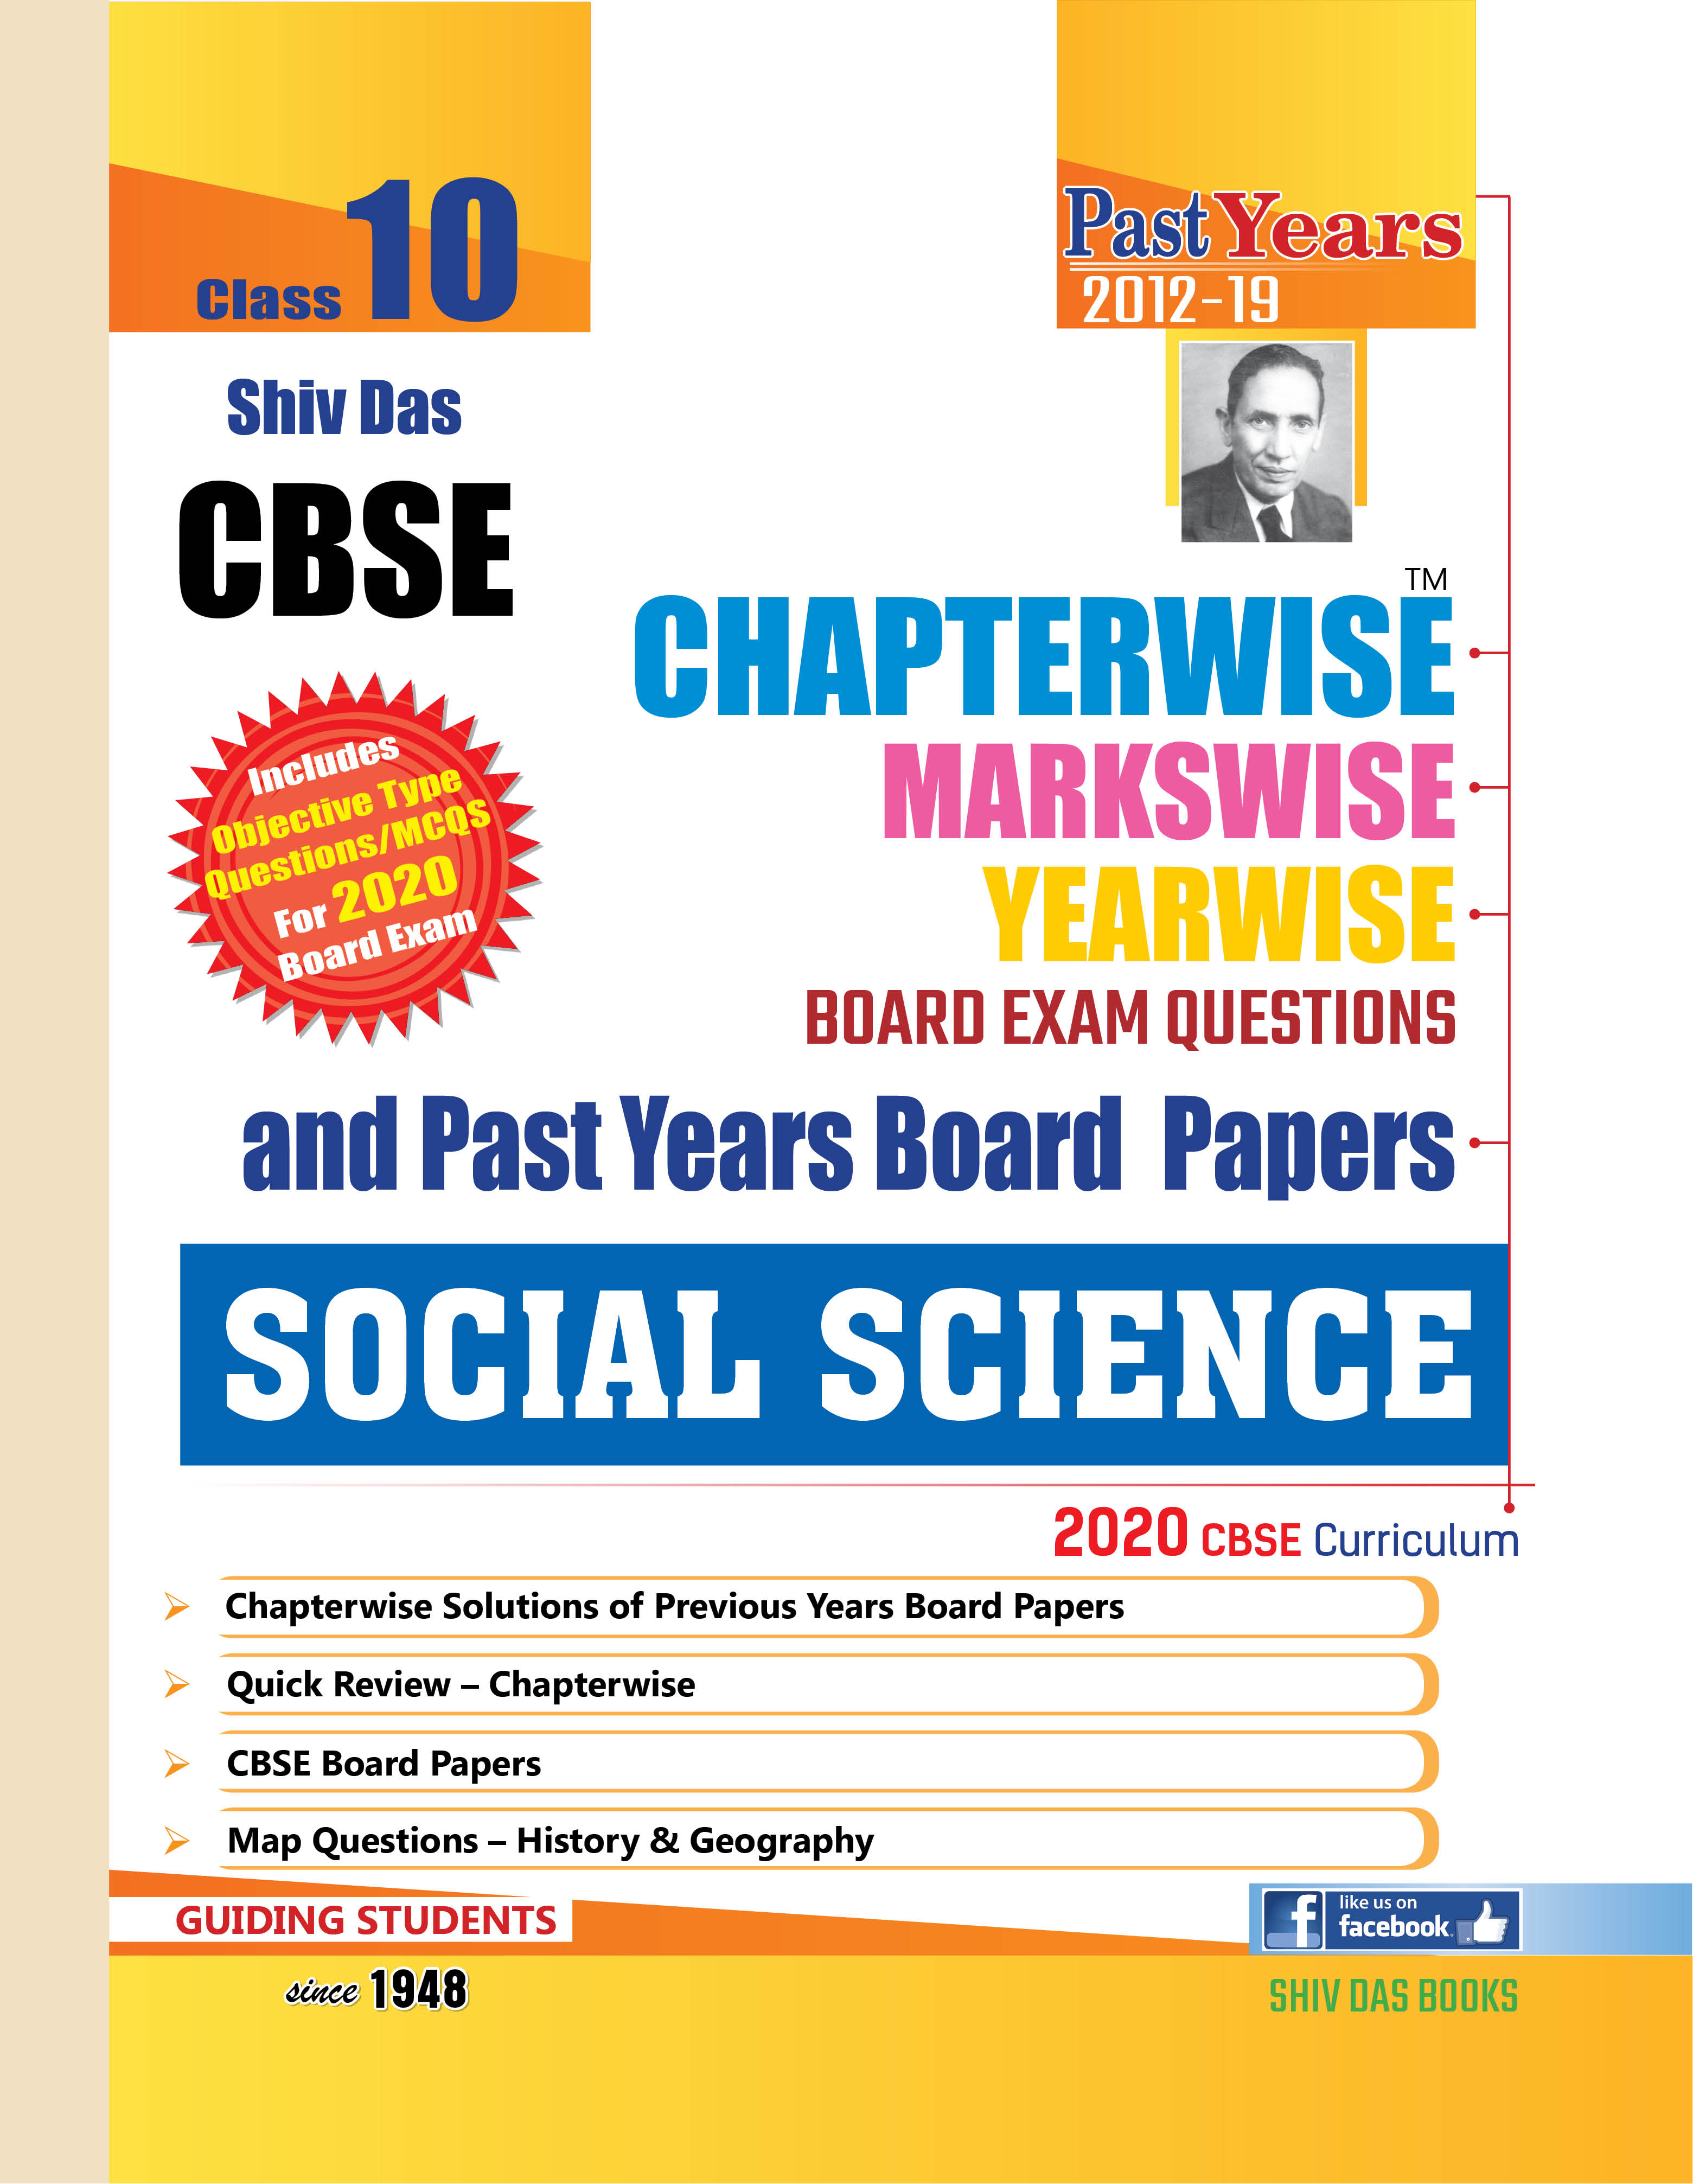 CBSE Chapterwise Markswise Yearwise Board Exam Questions & Past Years Board Papers For Class 10 Social Science (2020 Board Exam Edition)